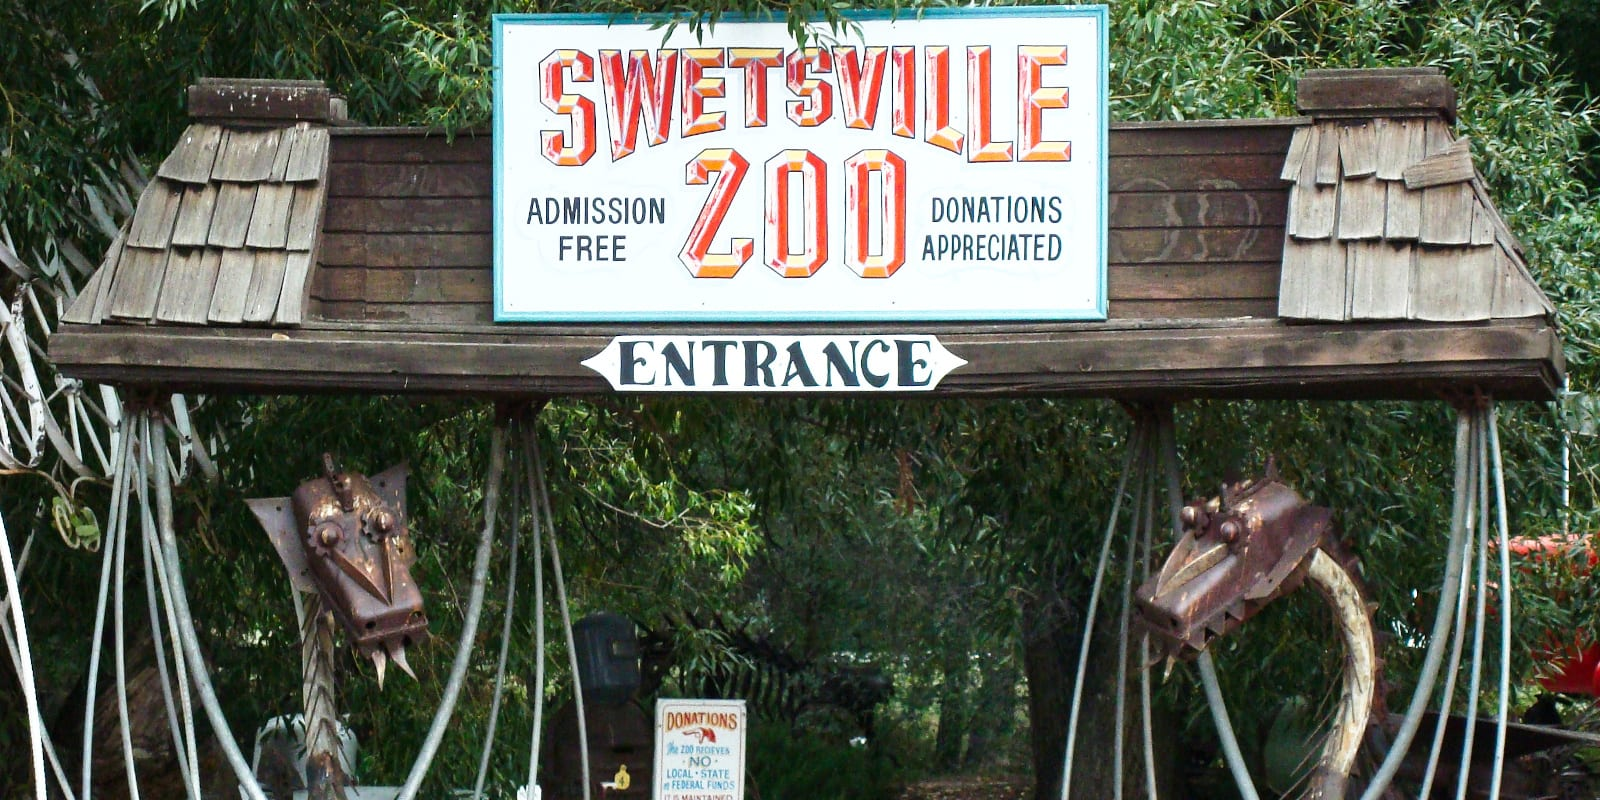 Swetsville Zoo, CO